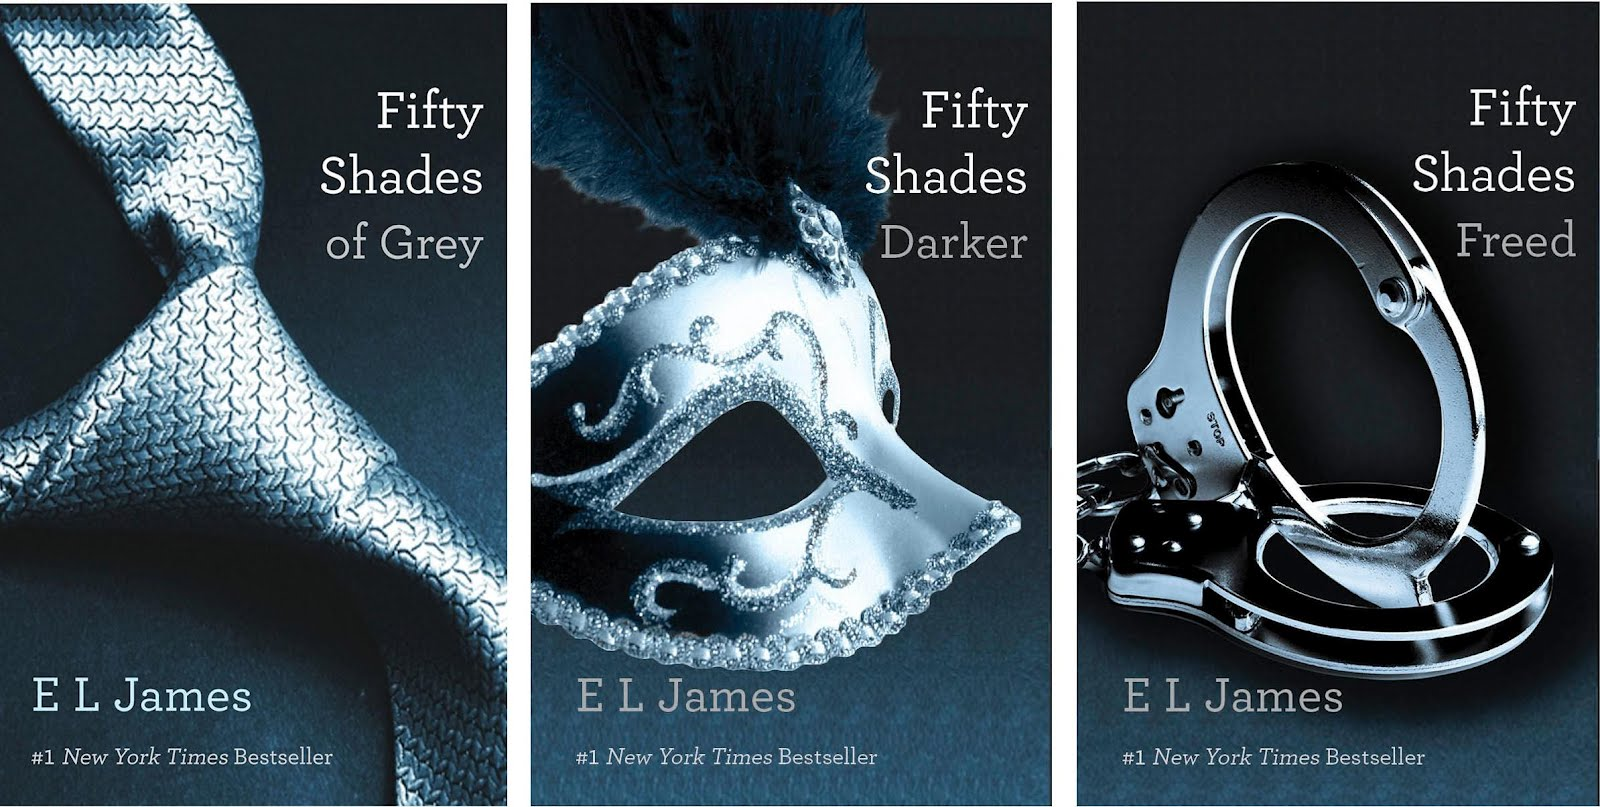 Book purses and reviews fifty shades of grey movie poster for Fifty shades if gray